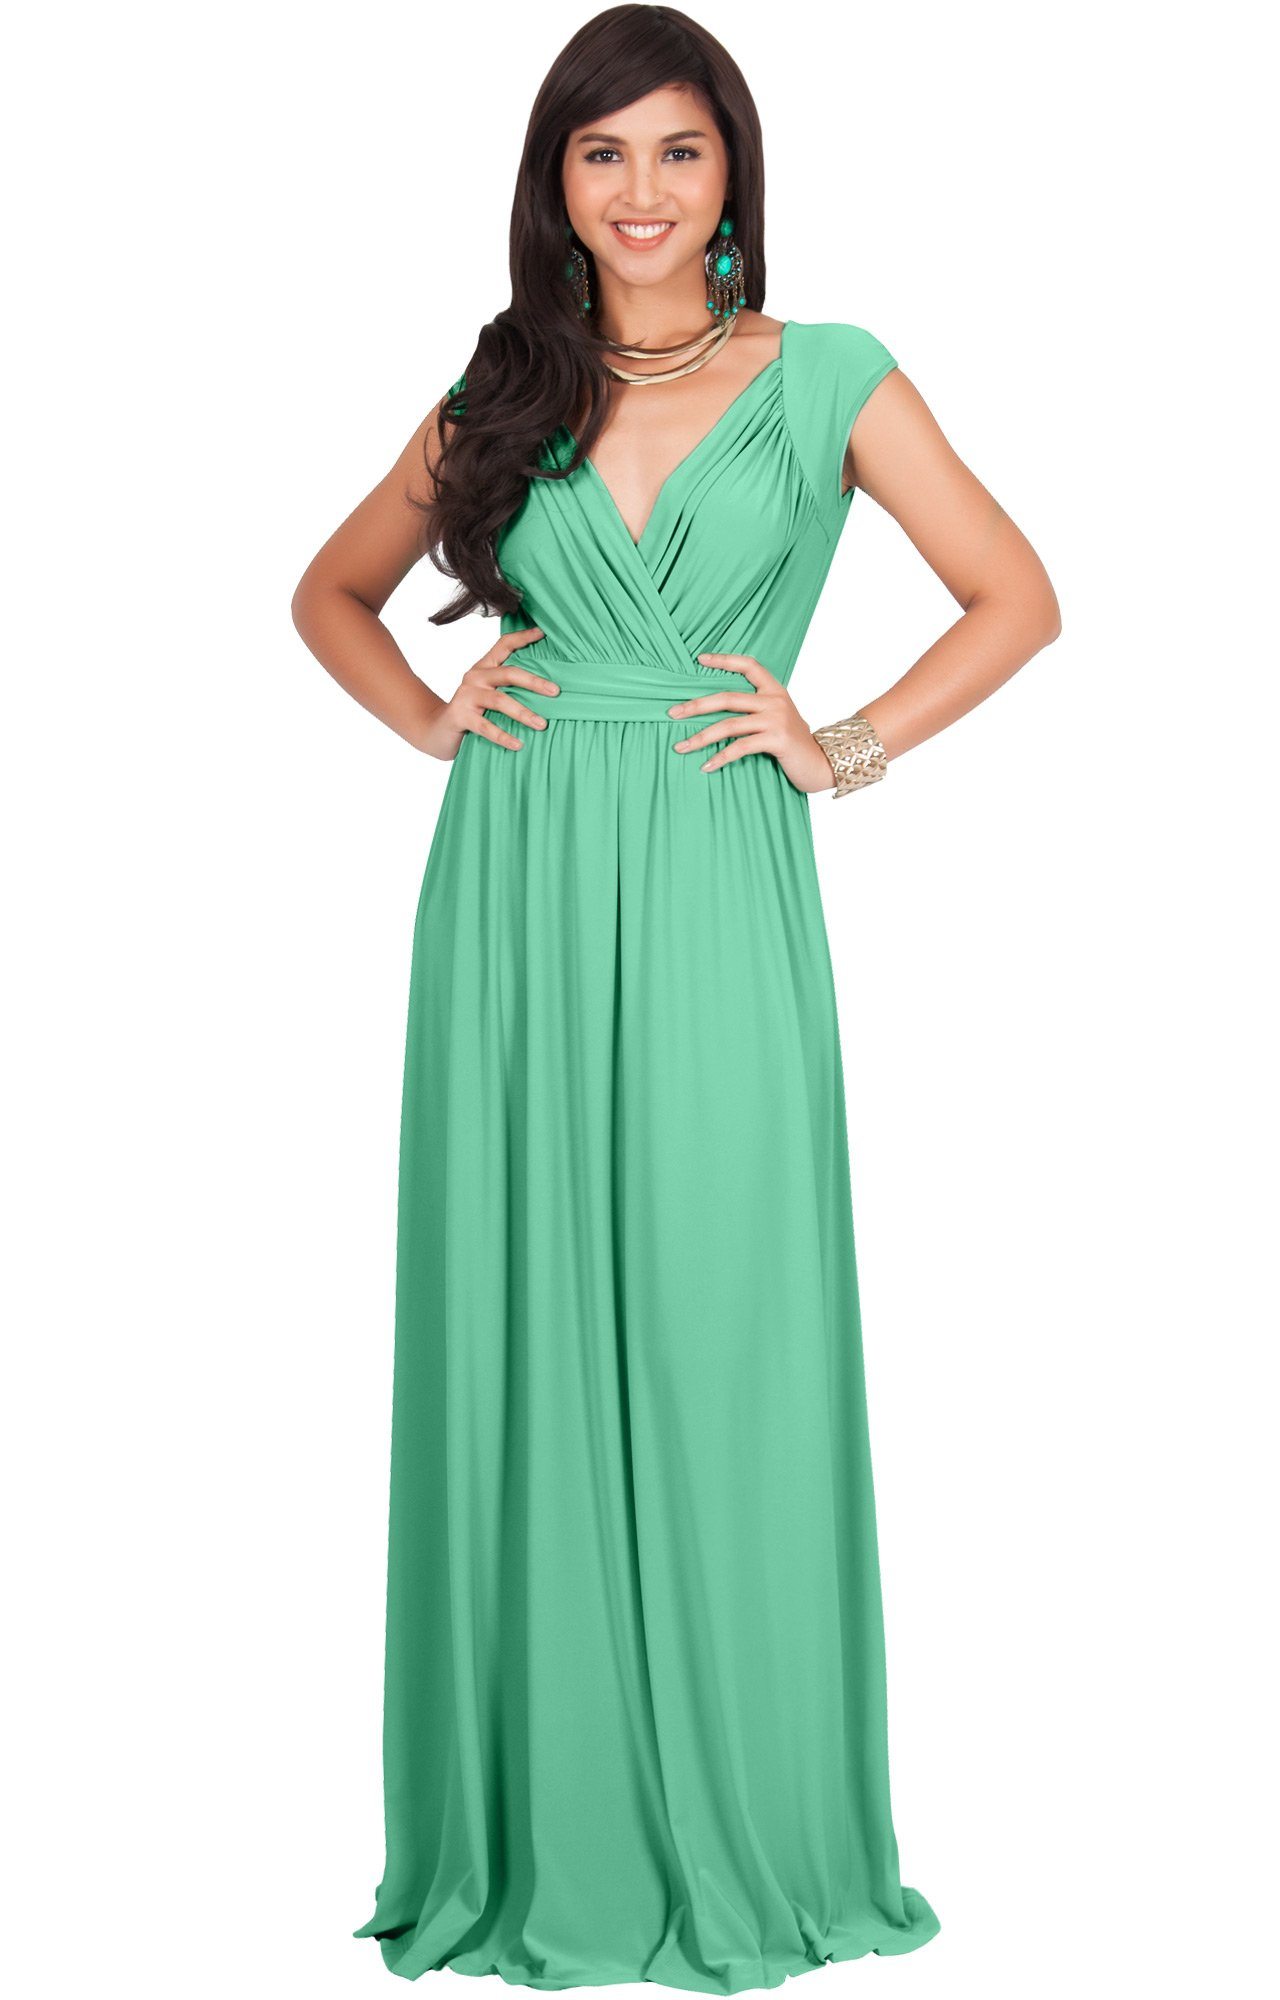 8ff36cc1ff KOH KOH Plus Size Womens Long Cap Short Sleeve Cocktail Evening Sleeveless  Bridesmaid Wedding Party Flowy V-Neck Empire Waist Vintage Sexy Gown Gowns  Maxi ...